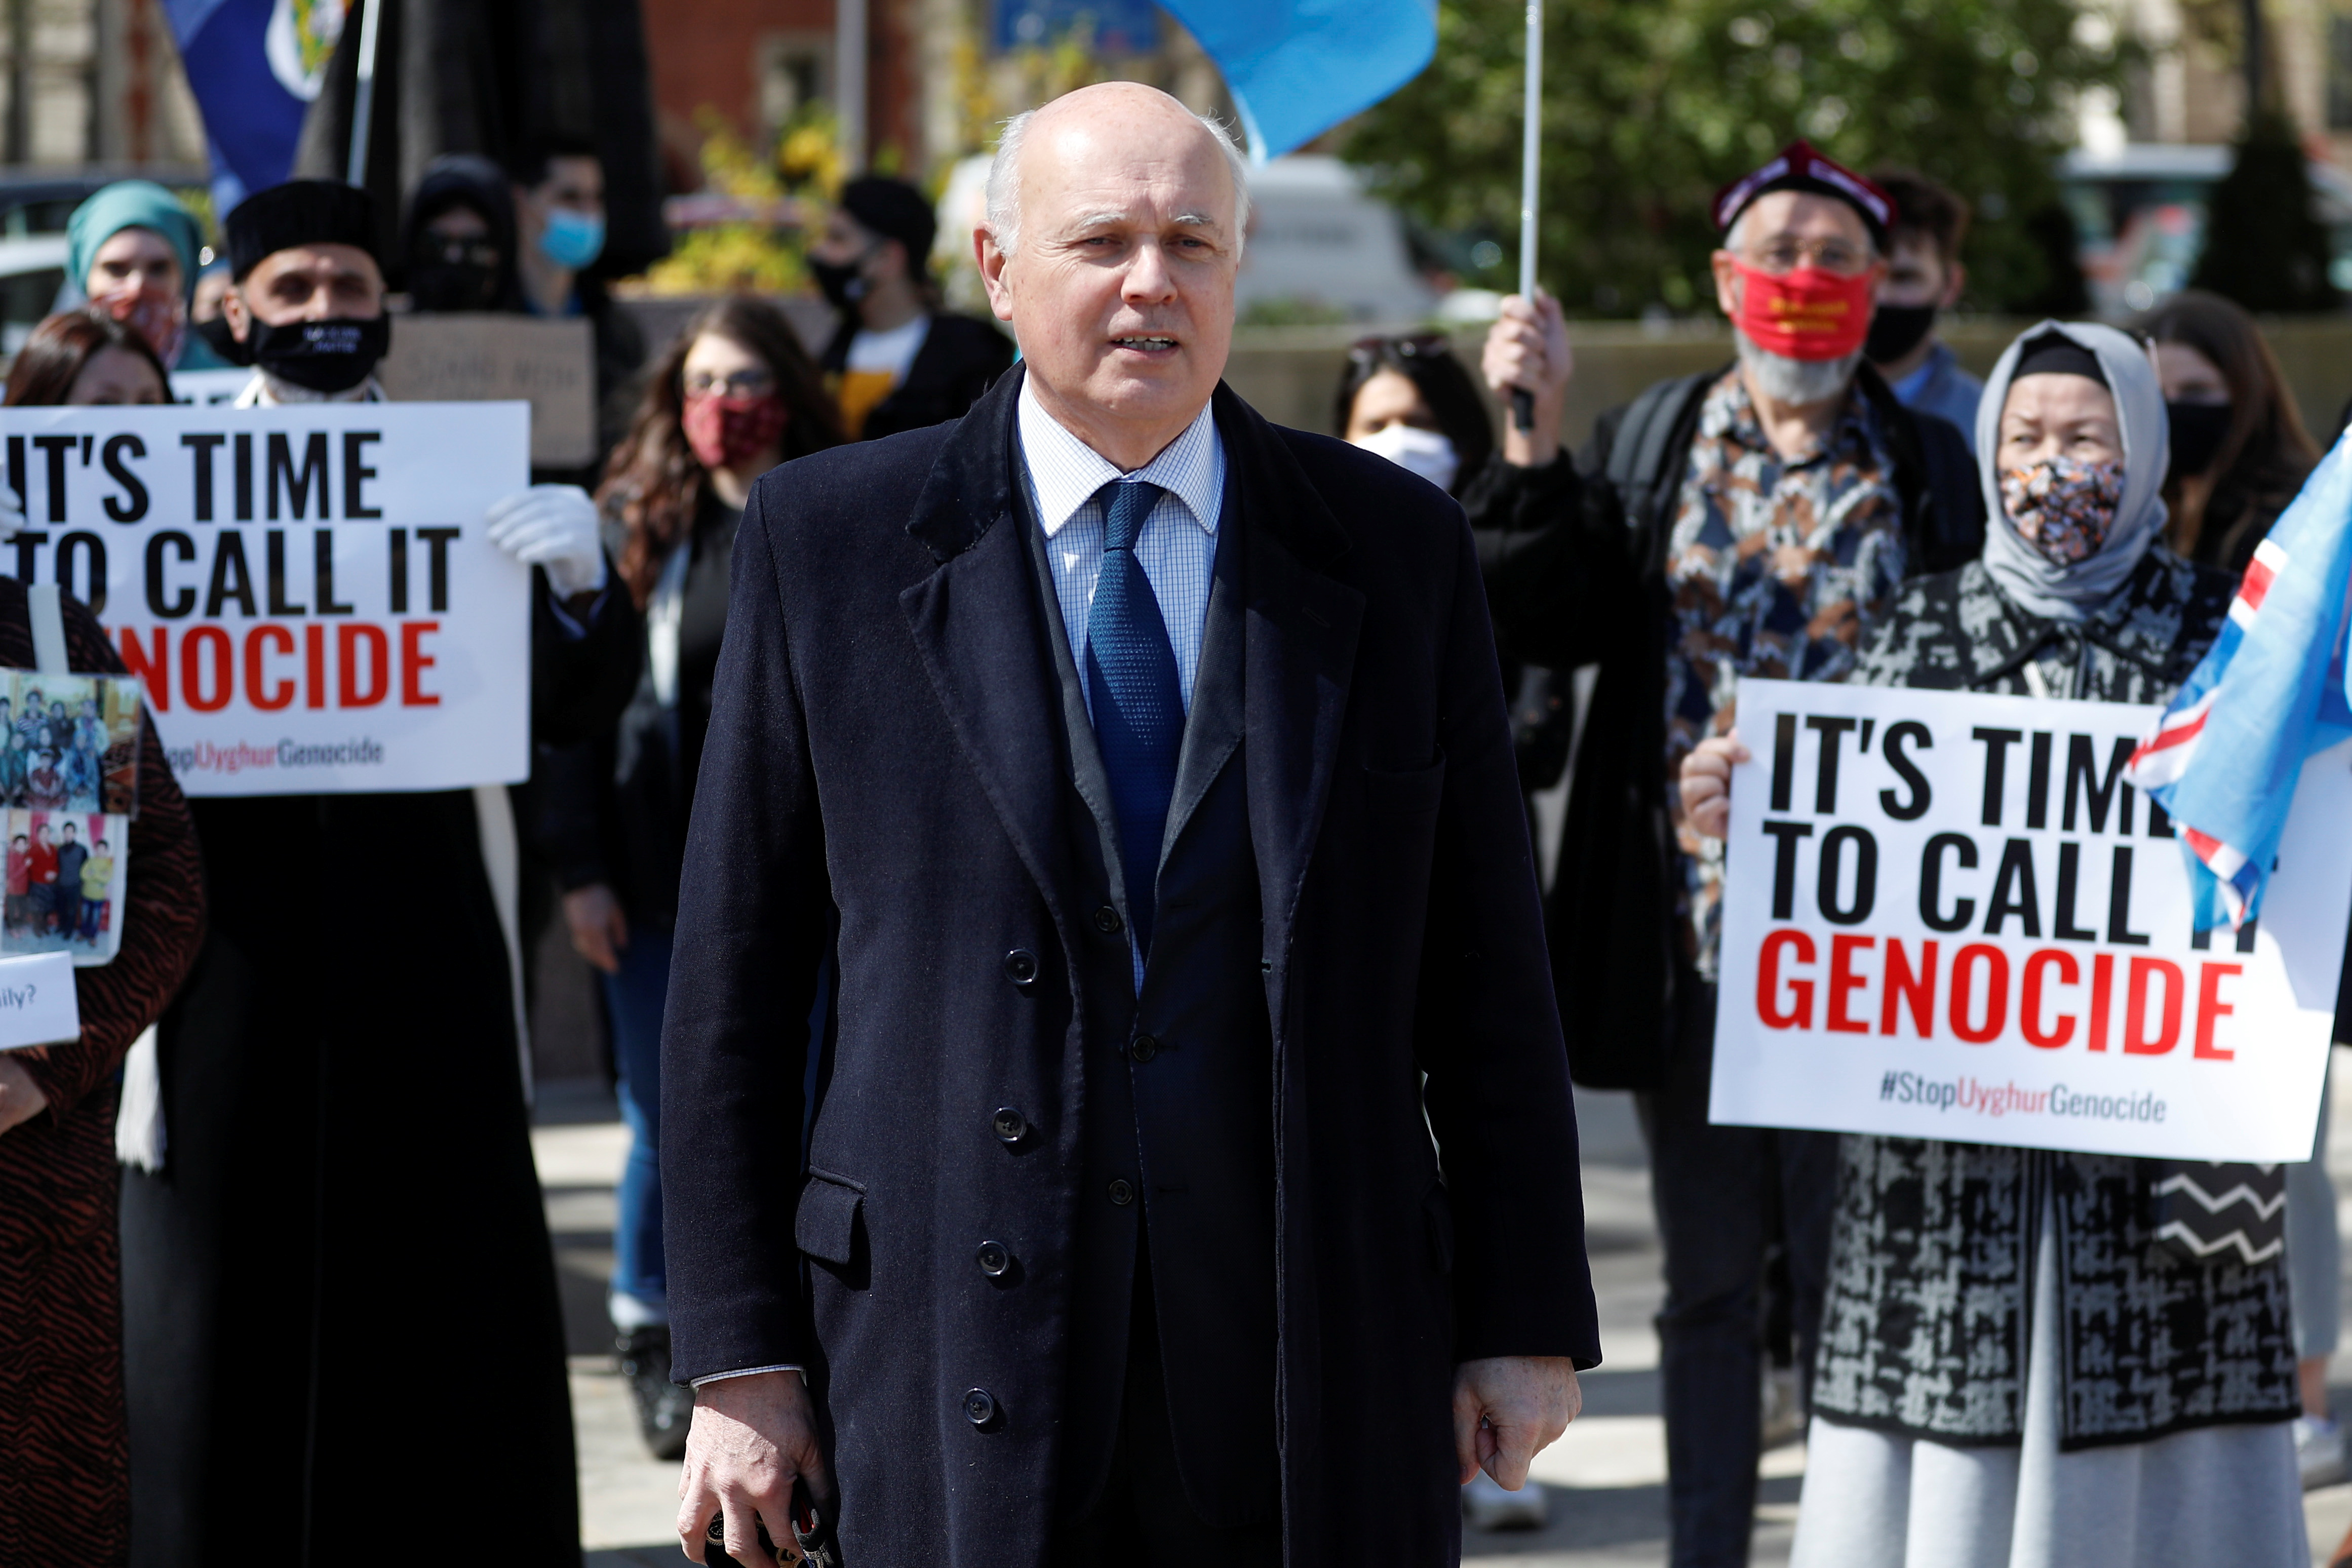 Britain's Conservative MP Iain Duncan Smith attends a protest against Uyghur genocide, in London, Britain April 22, 2021. REUTERS/Peter Nicholls